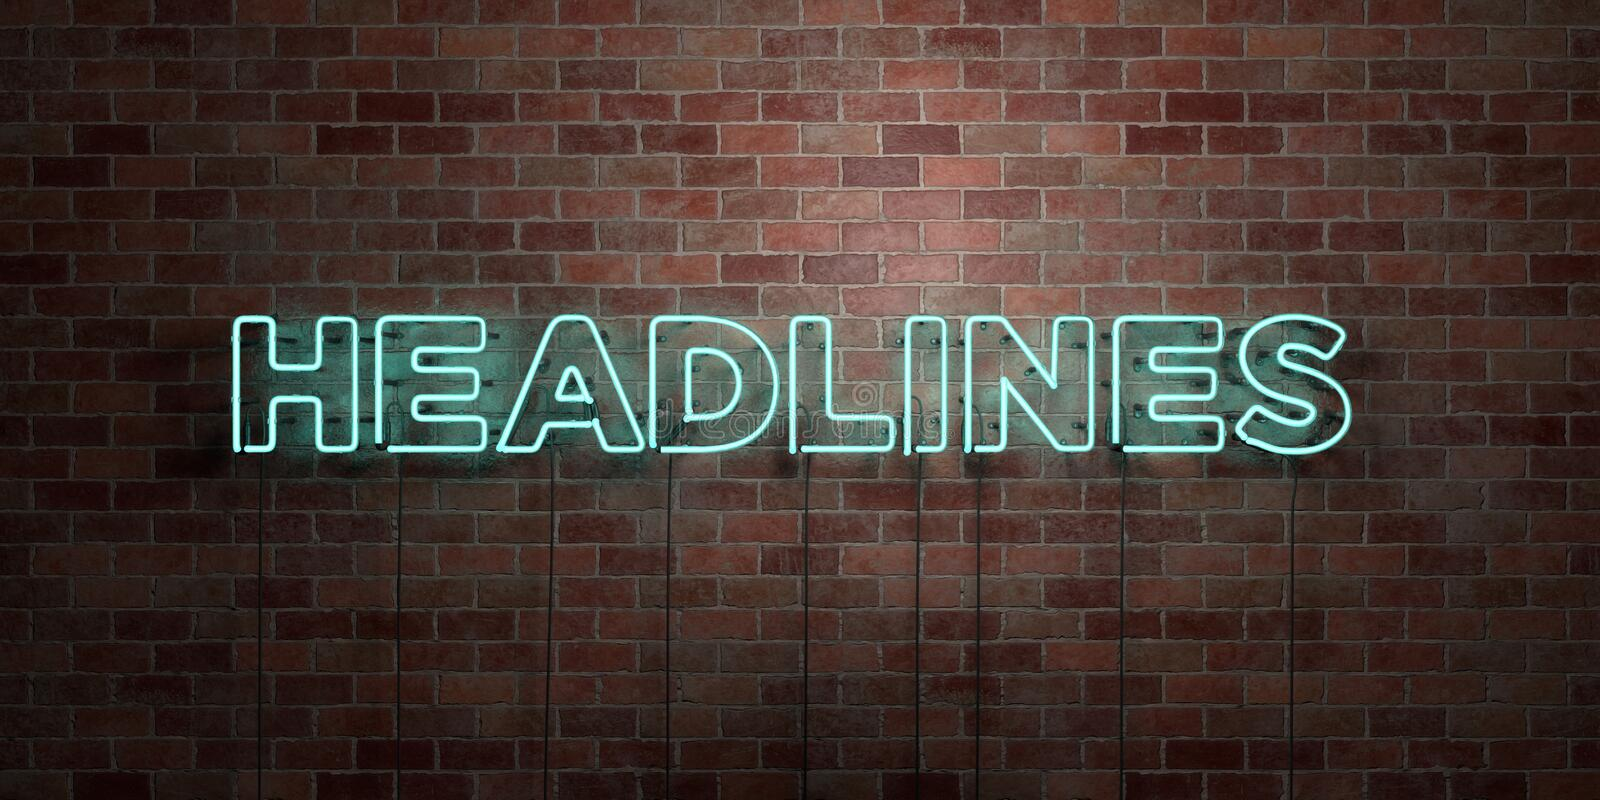 HEADLINES - fluorescent Neon tube Sign on brickwork - Front view - 3D rendered royalty free stock picture. Can be used for online banner ads and direct mailers stock illustration